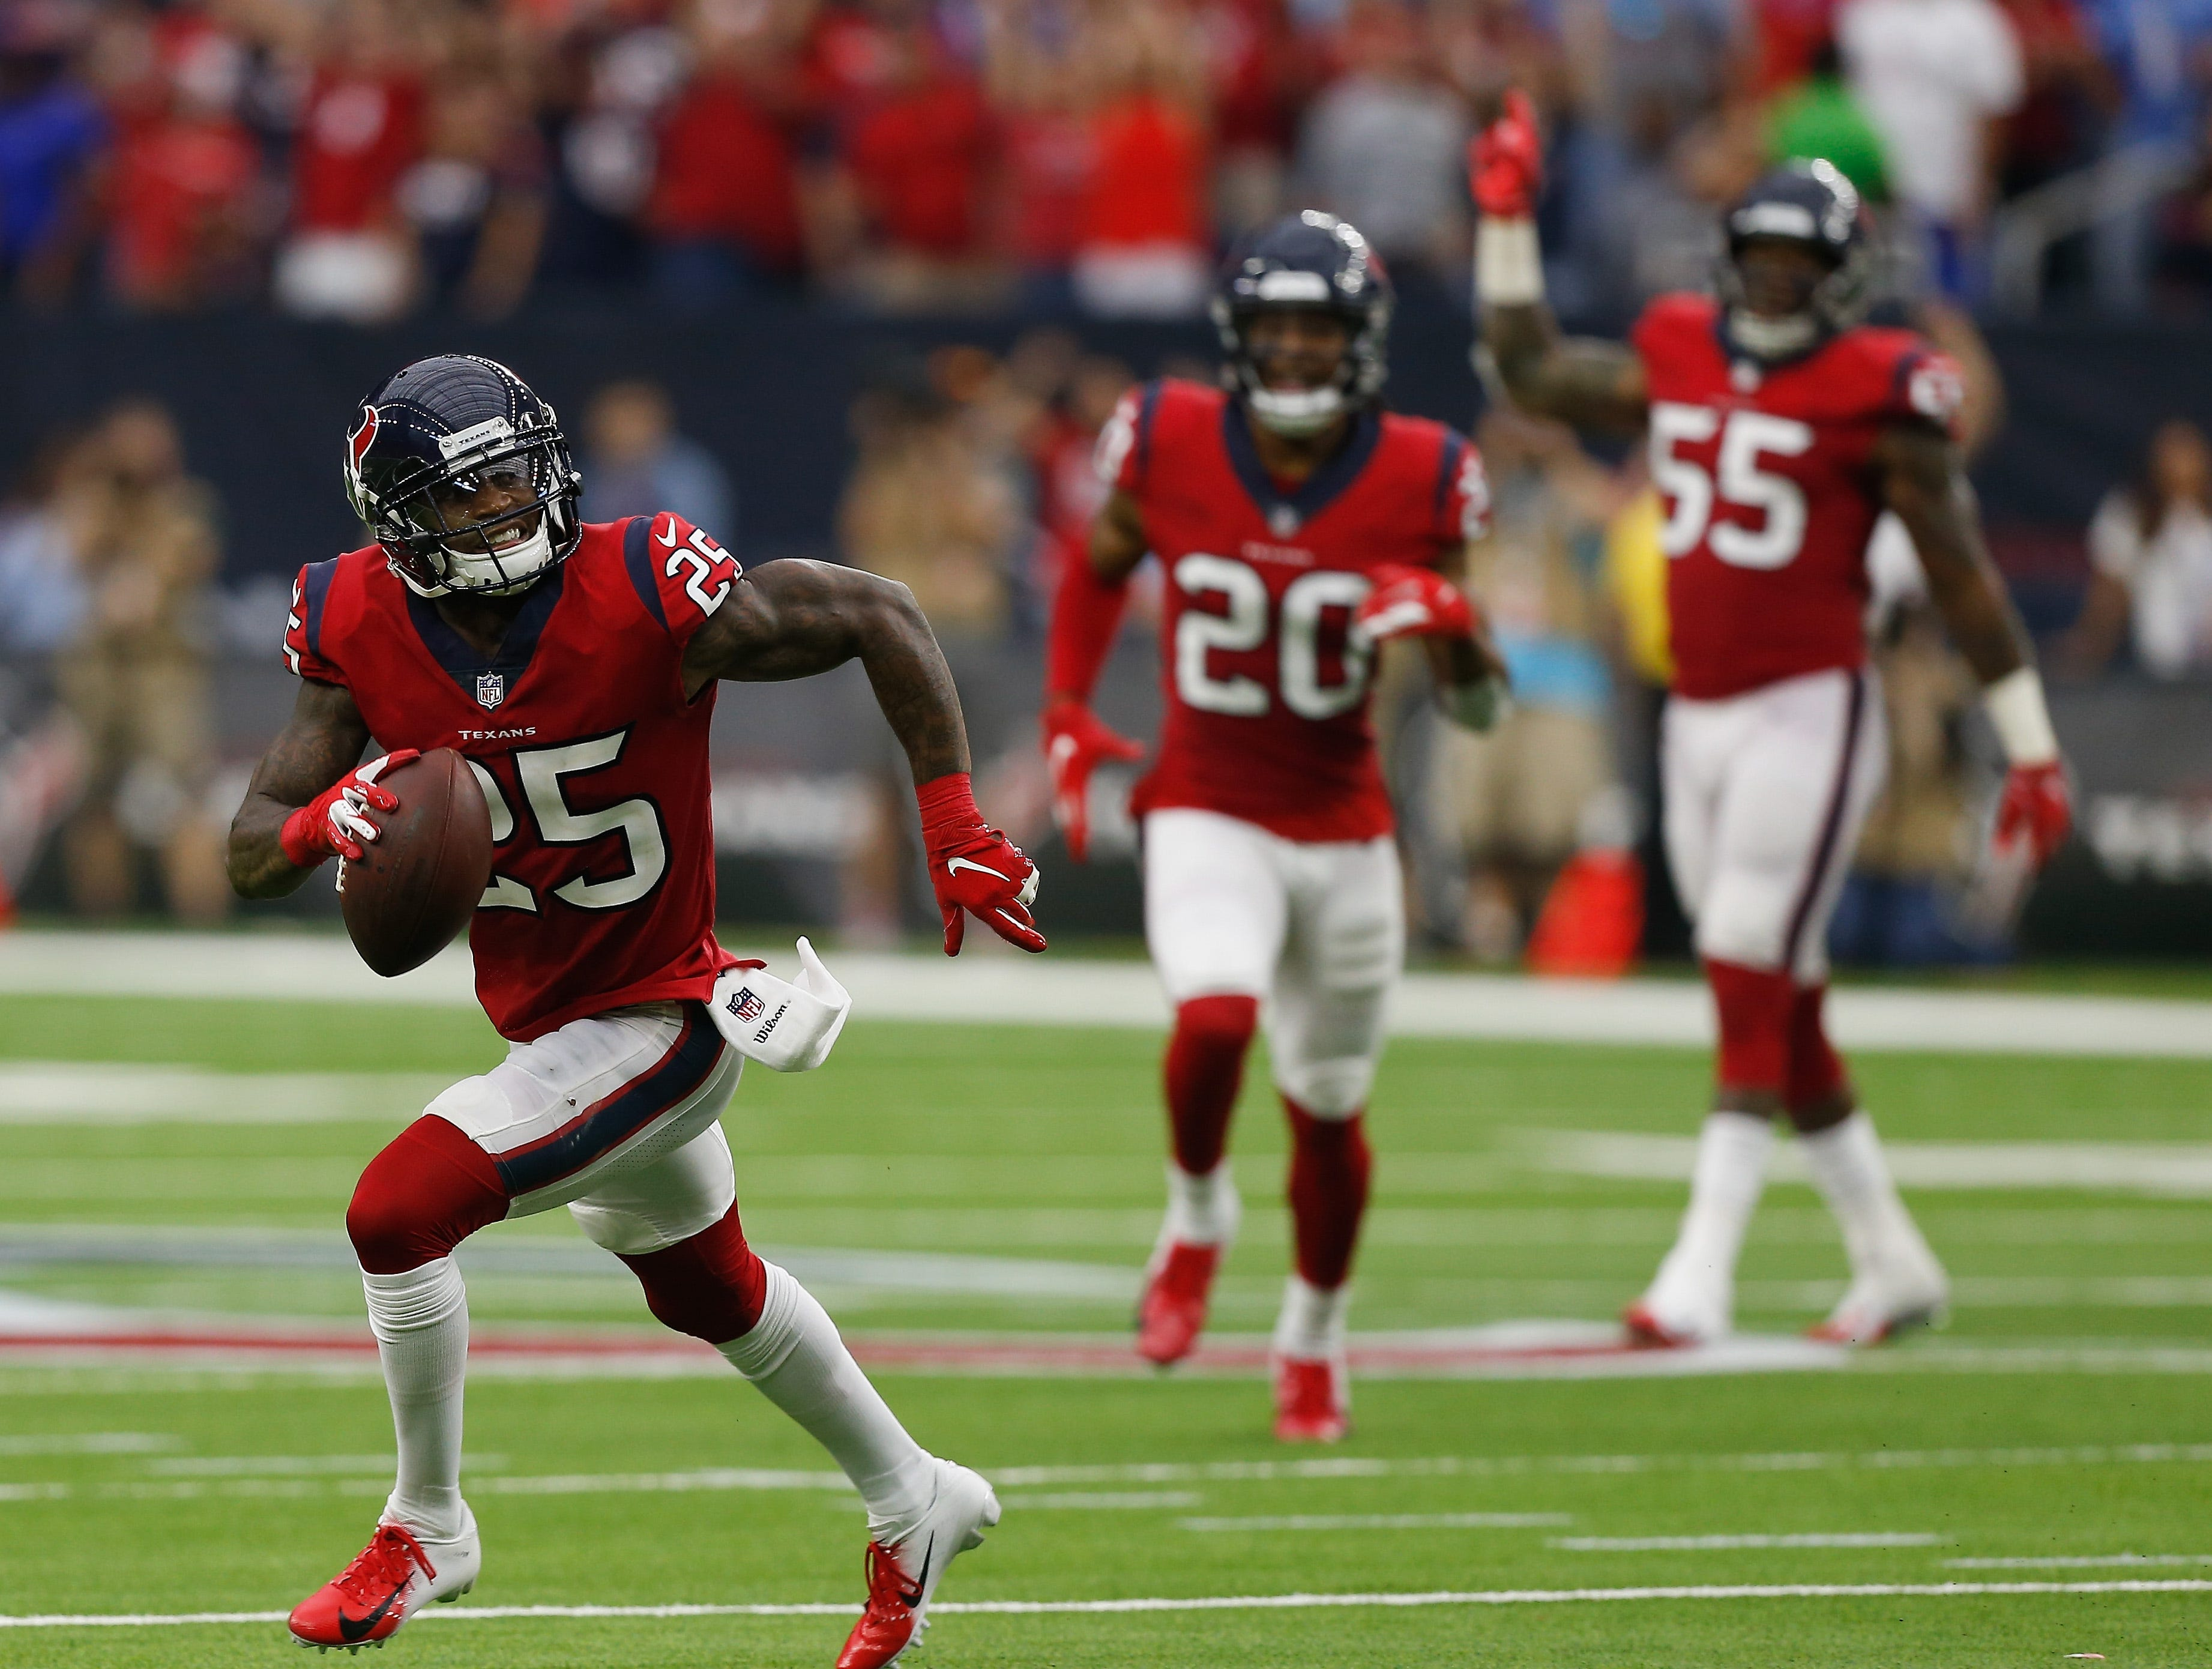 HOUSTON, TX - OCTOBER 14:  Kareem Jackson #25 of the Houston Texans runs with the ball after intercepting a pass against the Buffalo Bills in the fourth quarter at NRG Stadium on October 14, 2018 in Houston, Texas.  (Photo by Bob Levey/Getty Images)